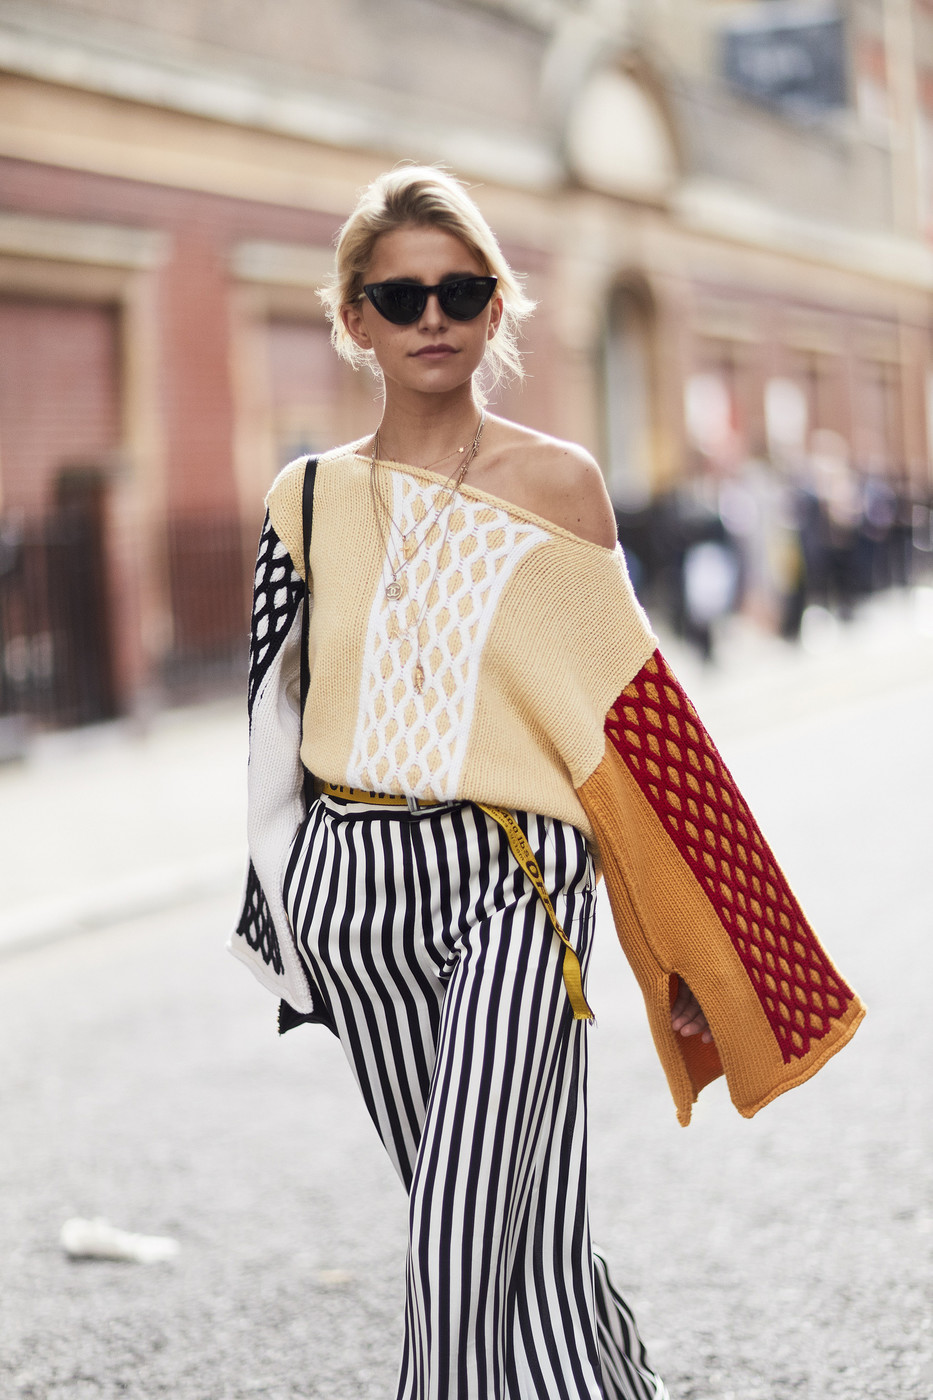 Off The Shoulder Sweater The Most Inspiring Street Style At London Fashion Week Livingly